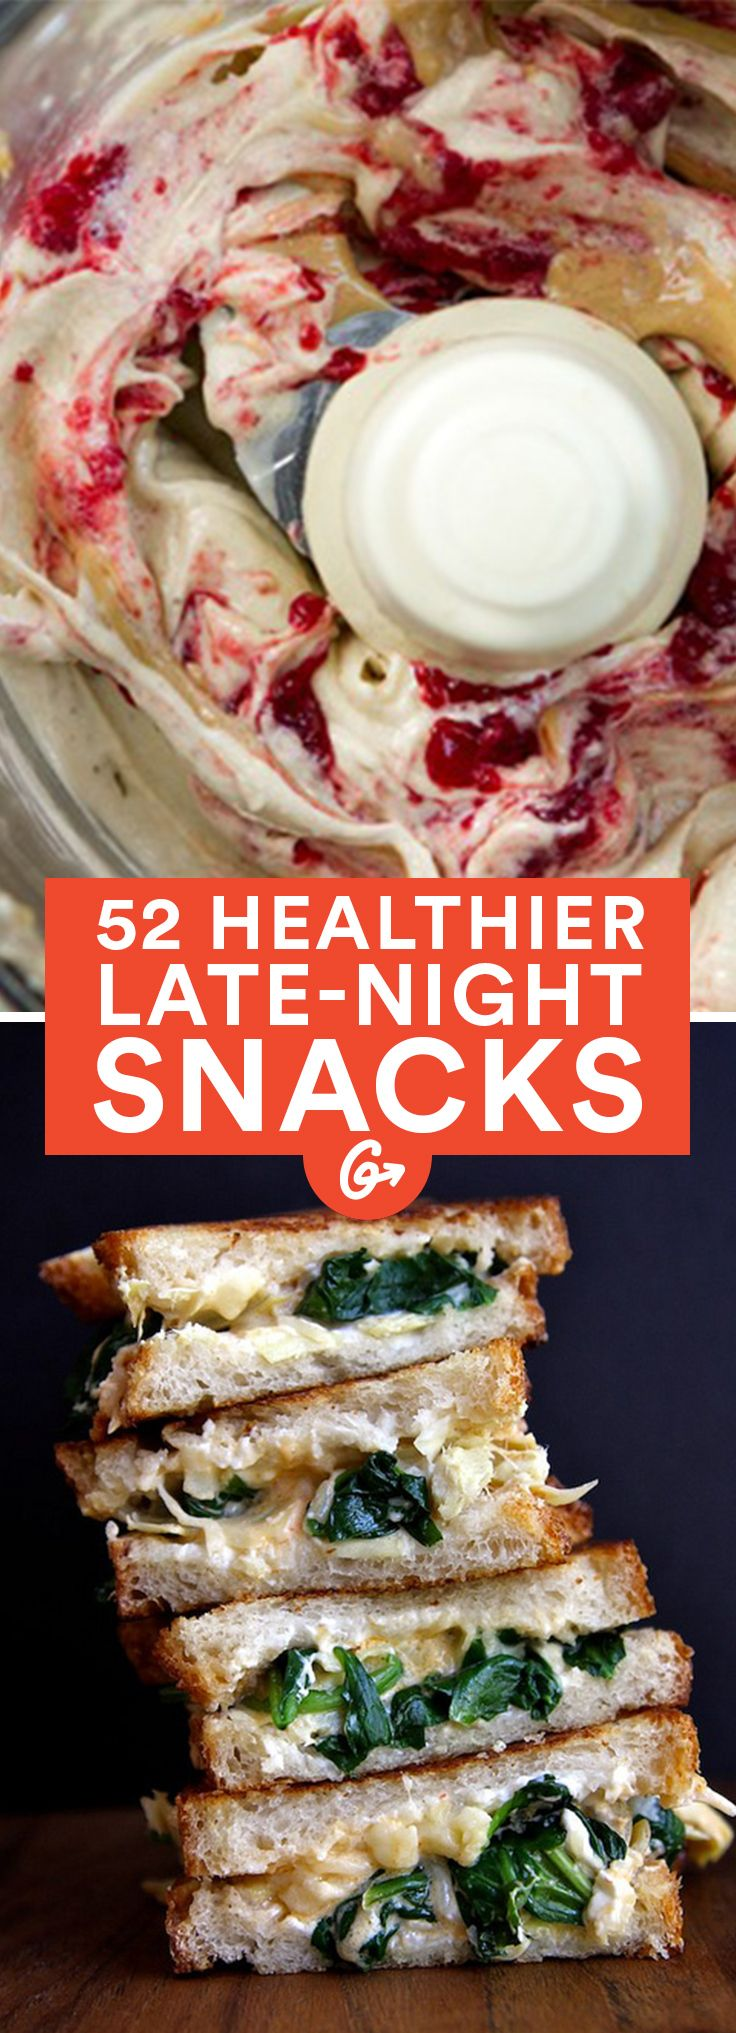 Interesting things for you late night the coolest bedroom in the - 52 Healthier Alternatives To Late Night Snacks